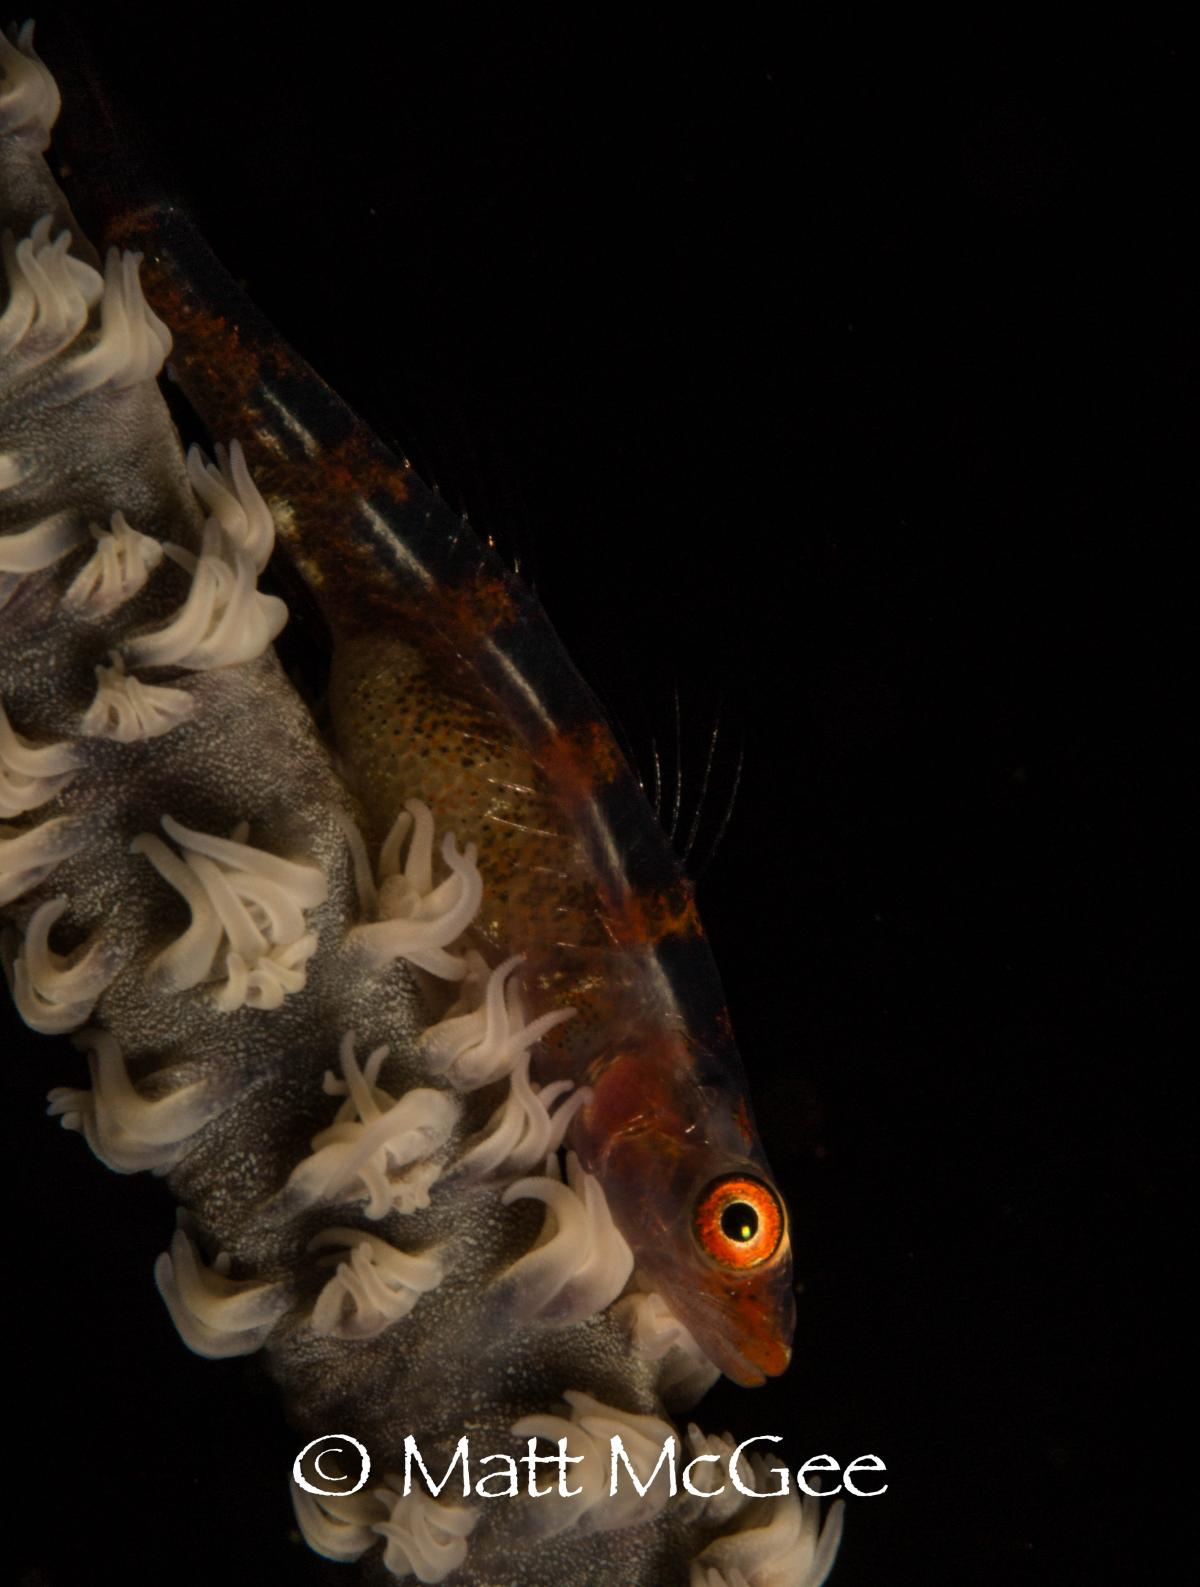 whip coral goby photo image by underwater photographer Matt McGee Lembeh Strait Indonesia .jpg